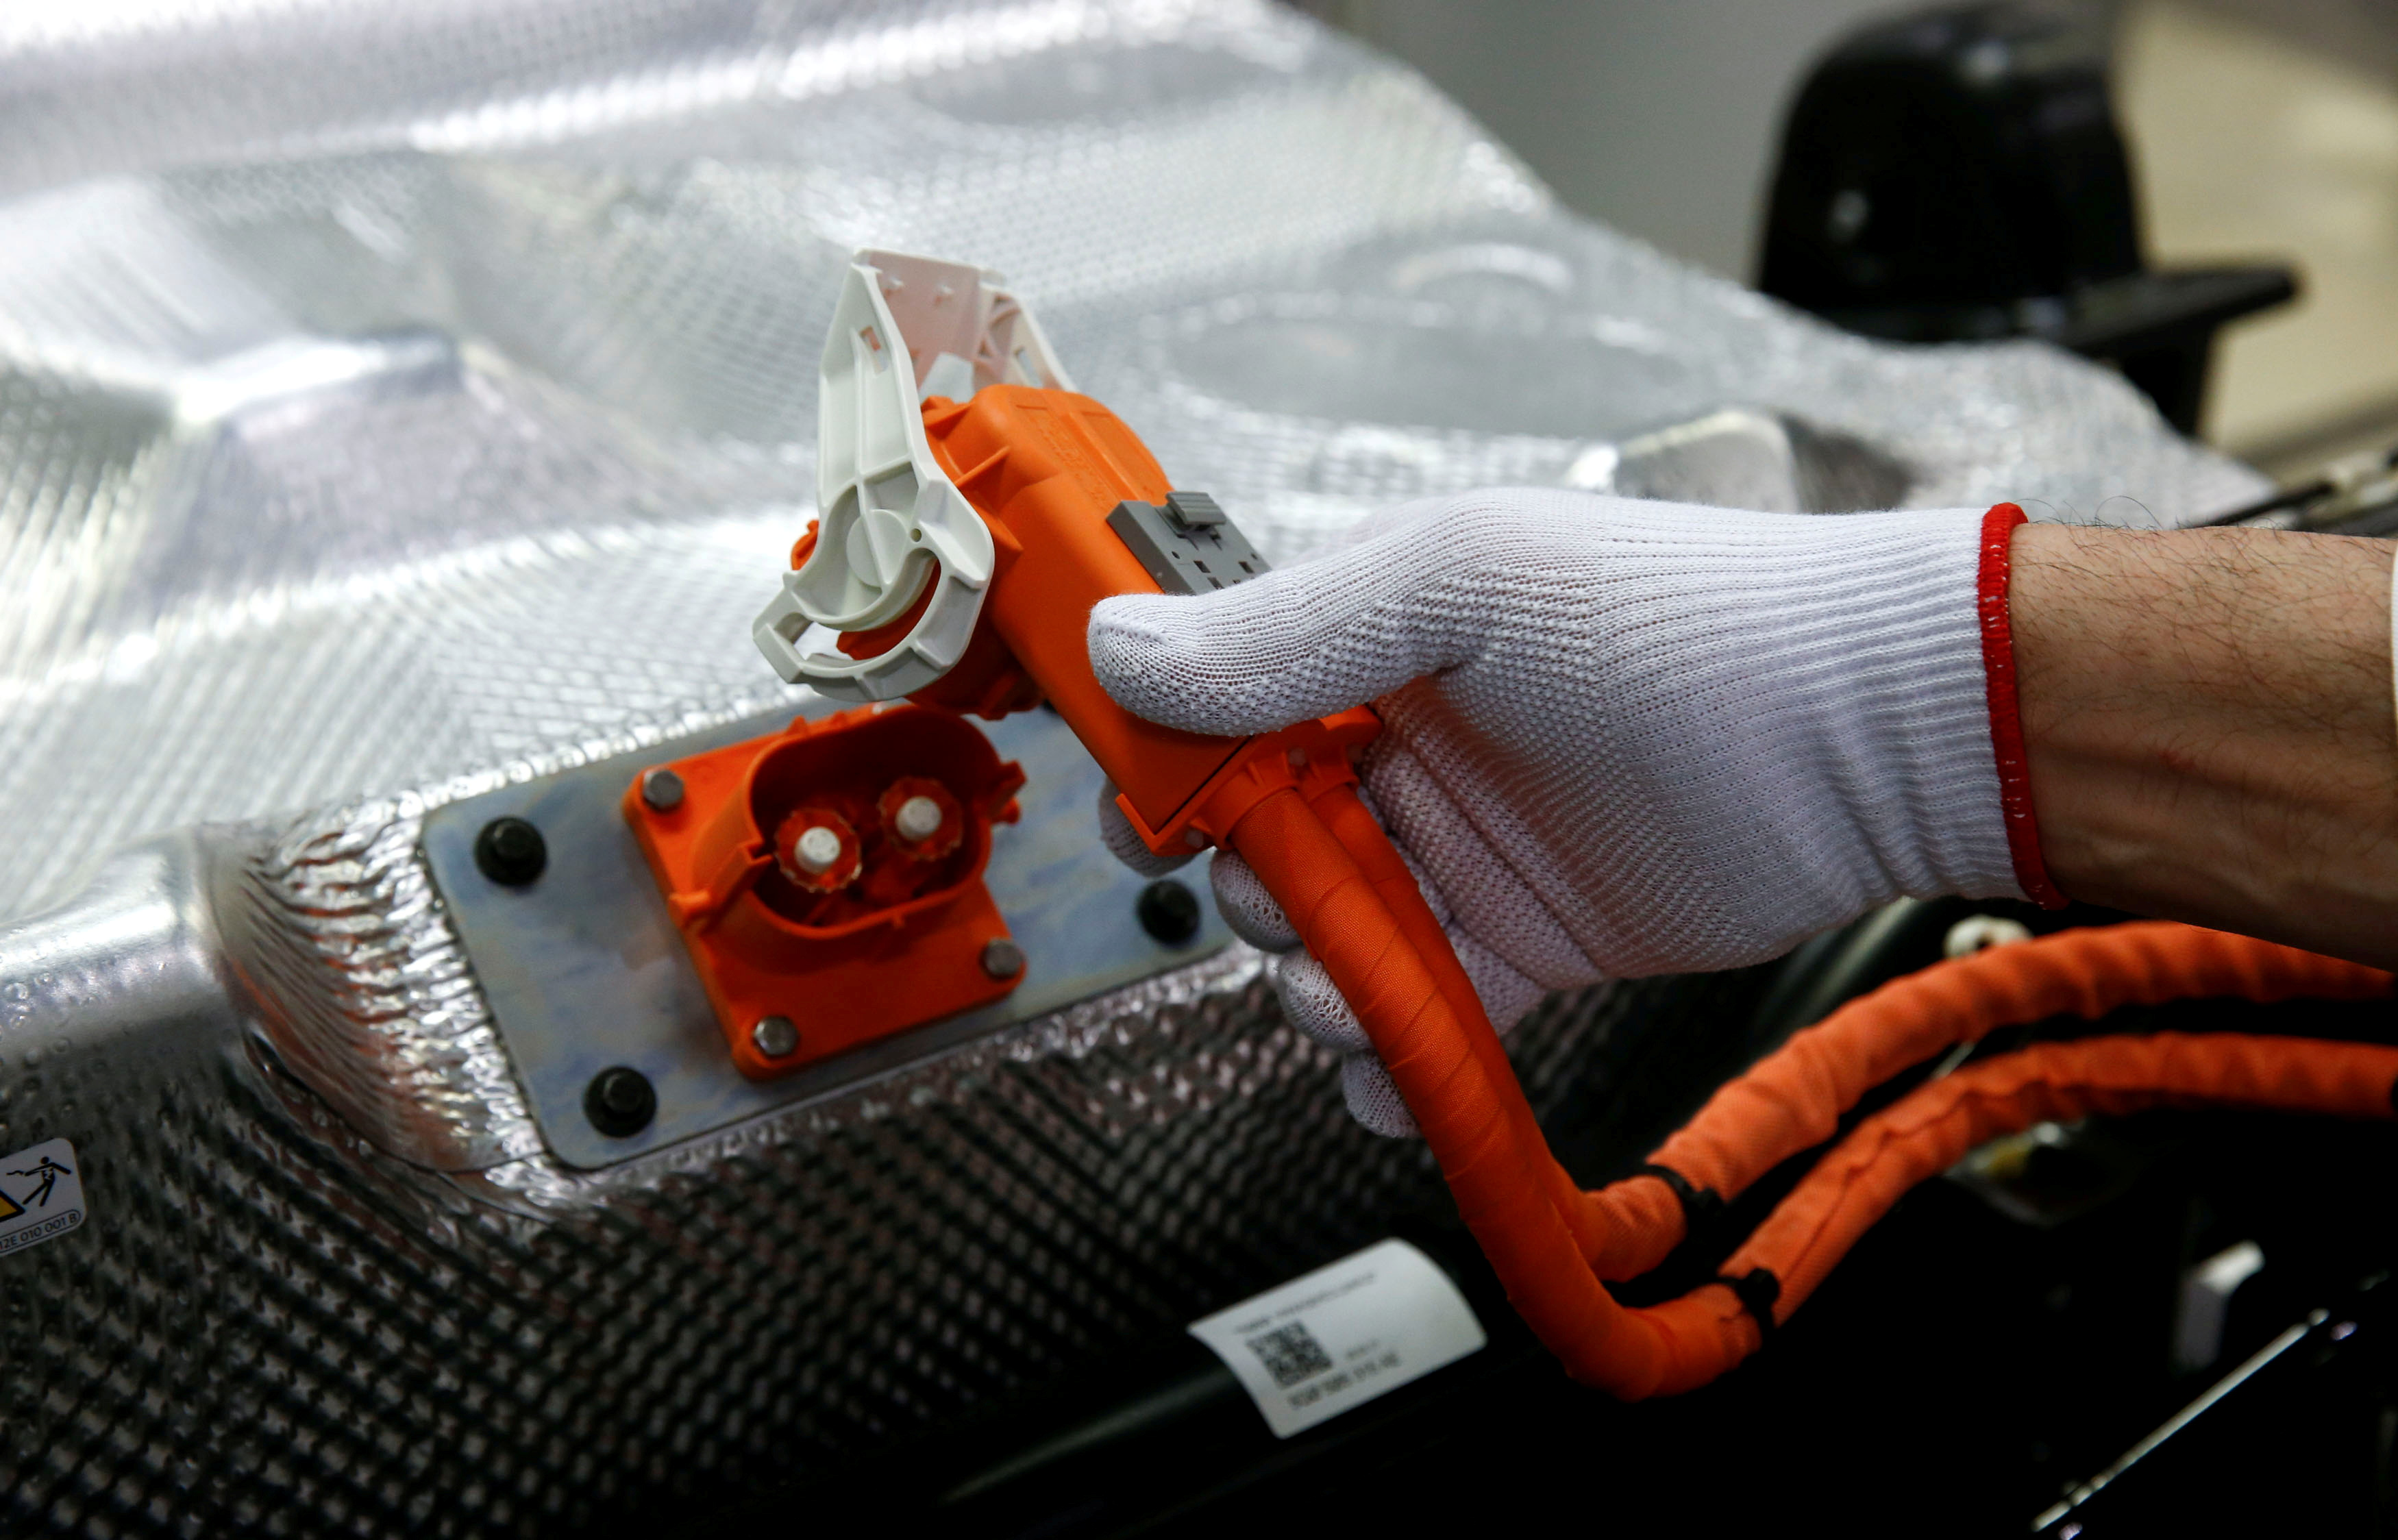 A worker connects the battery during the assembly of an e-Golf electric car at the new production line of the Transparent Factory of German carmaker Volkswagen in Dresden, Germany March 30, 2017. REUTERS/Fabrizio Bensch